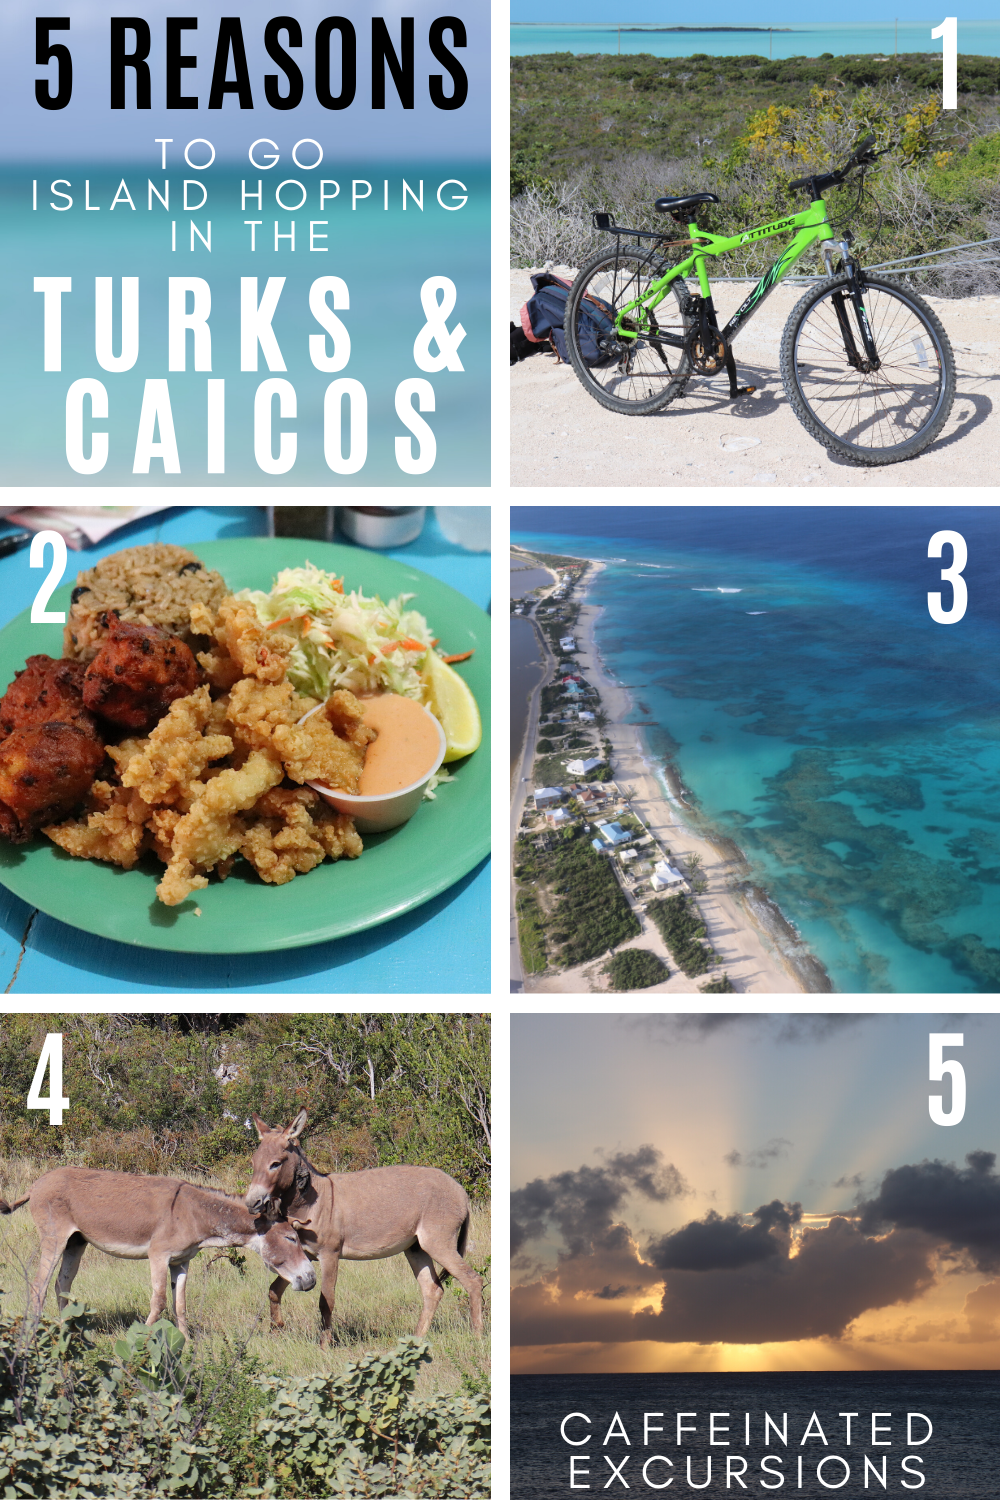 The Turks and Caicos Islands are perfect for an island-hopping getaway! Check out my post to see why, and learn some tips for making it a smooth journey! #turksandcaicos #tci #turksandcaicosislands #providenciales #provo #grandturk #southcaicos #islandhopping #islandvacation #visitturksandcaicos #visittci #islandhoppingguide #travelblog #travelblogs #turksandcaicosislandsguide #travelblogger #travelbloggers #caribbean #caribbeantravel #caribbeantravelguide